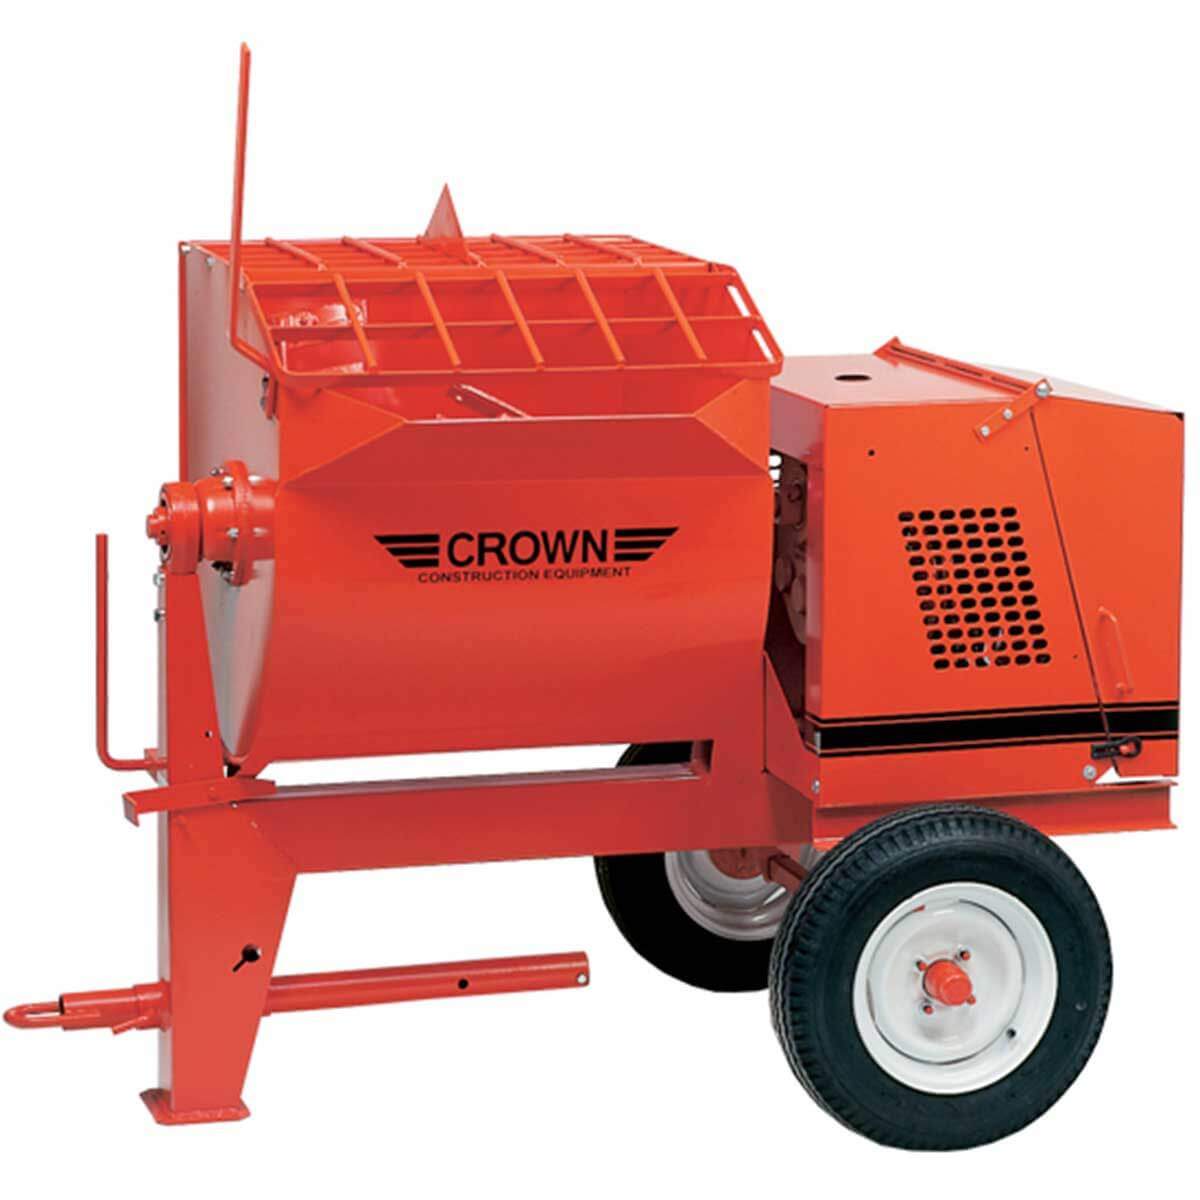 Crown 10S Towable Mortar Mixer